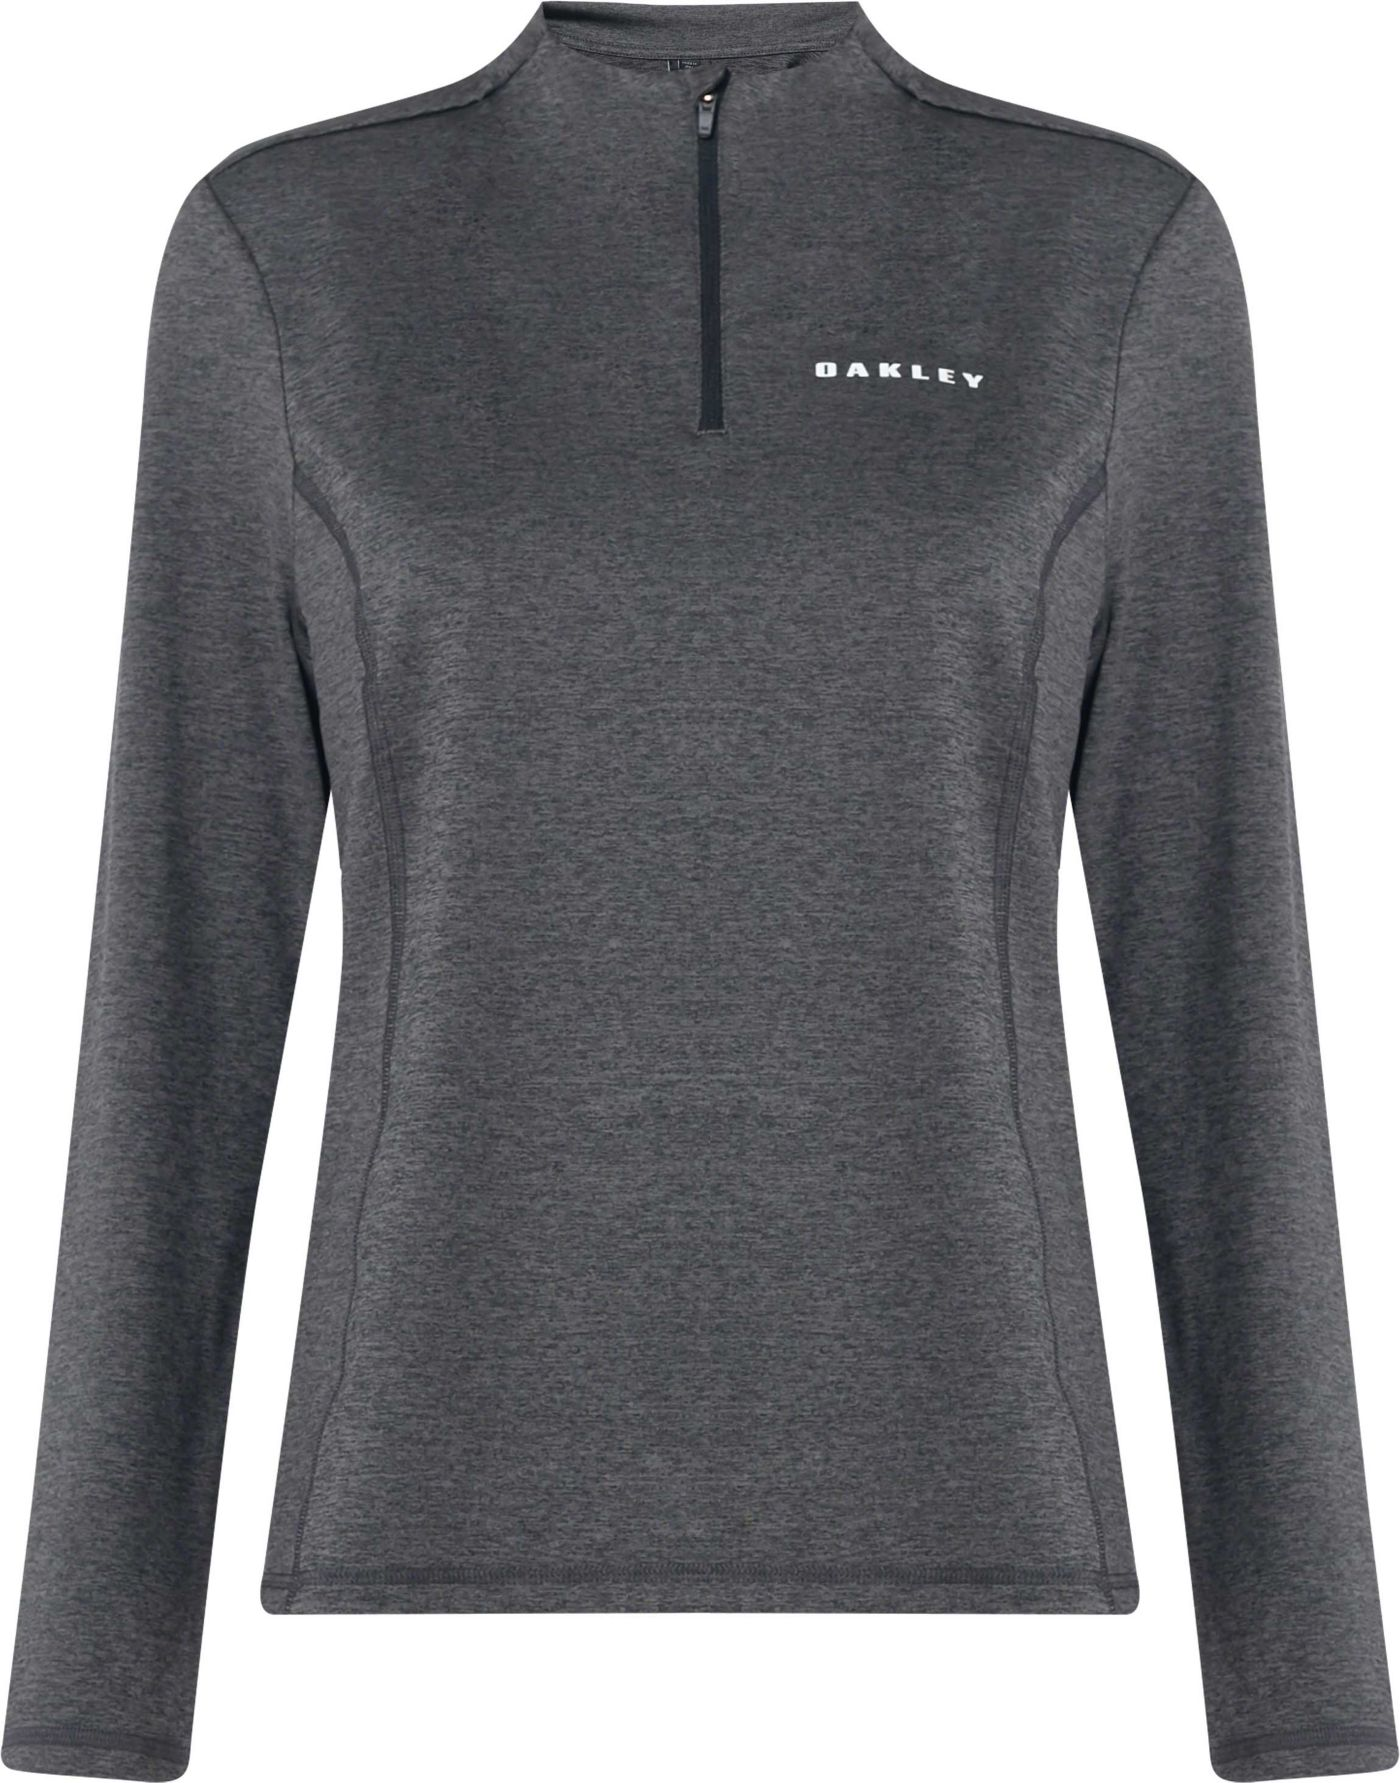 Oakley Women's Balata ¼-Zip Golf Pullover